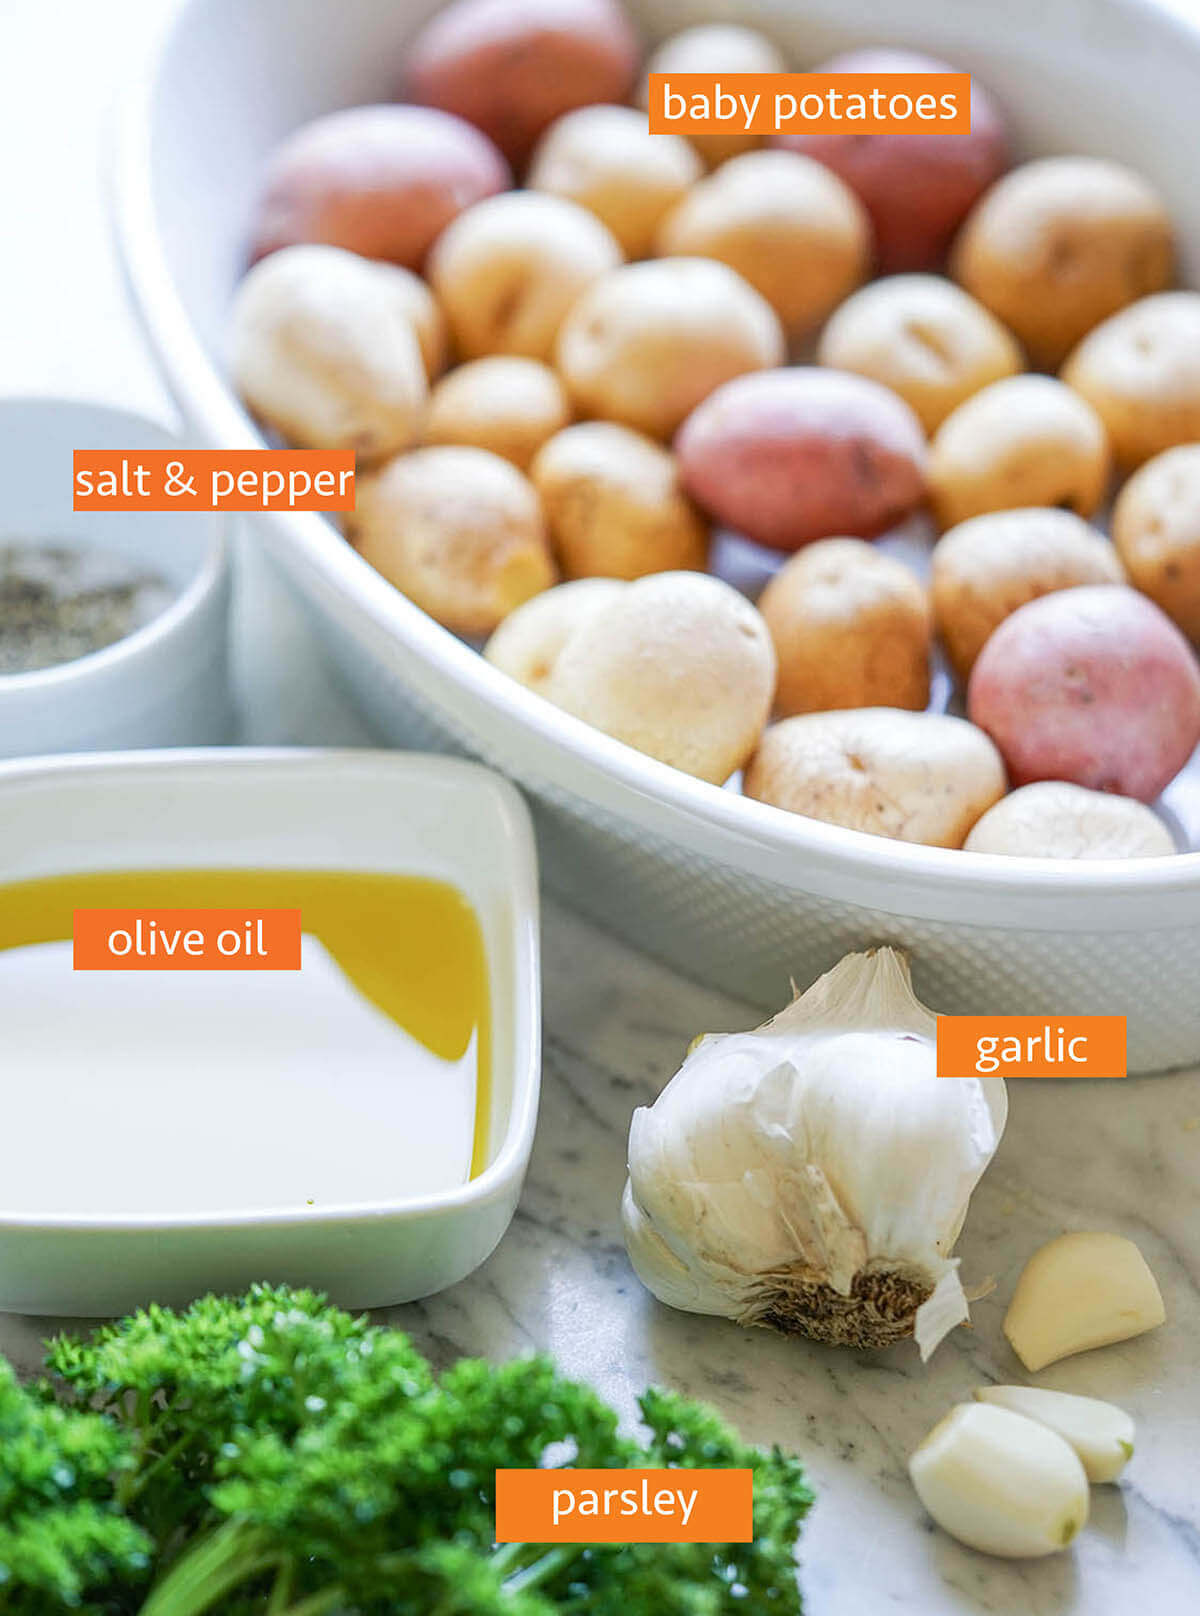 Ingredients to make smashed potato recipe